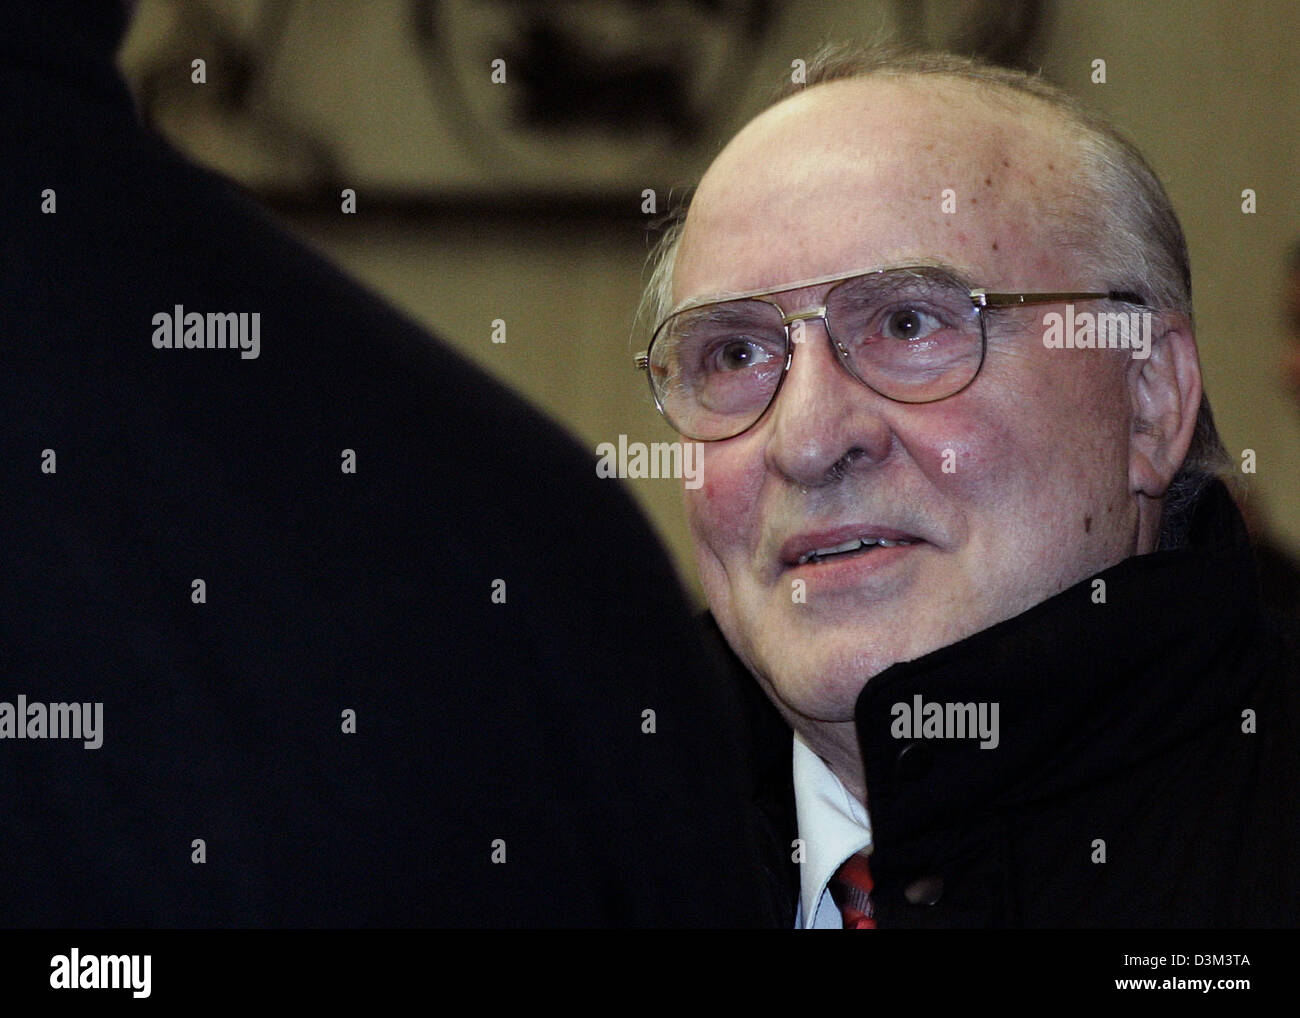 (dpa) - Denier of the Holocaust, Ernst Zuendel, arrives in the court hall of the Regional Court in Mannheim, Germany, Stock Photo